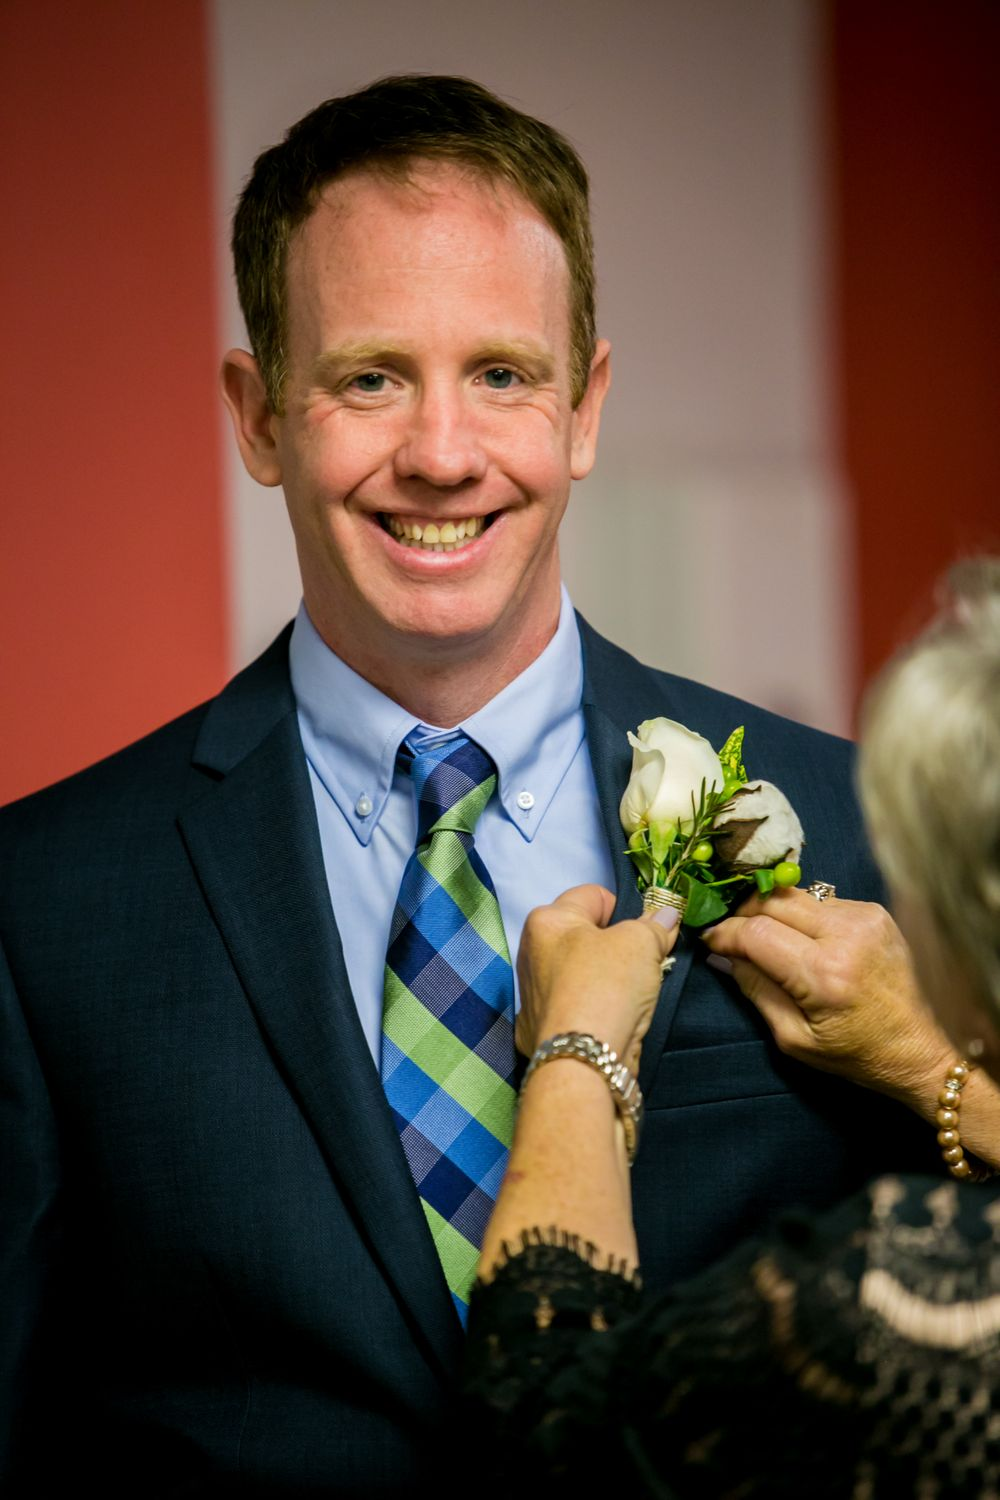 Groom Jason has his boutonnière put on before his wedding at the South Carolina State Museum in Columbia, SC